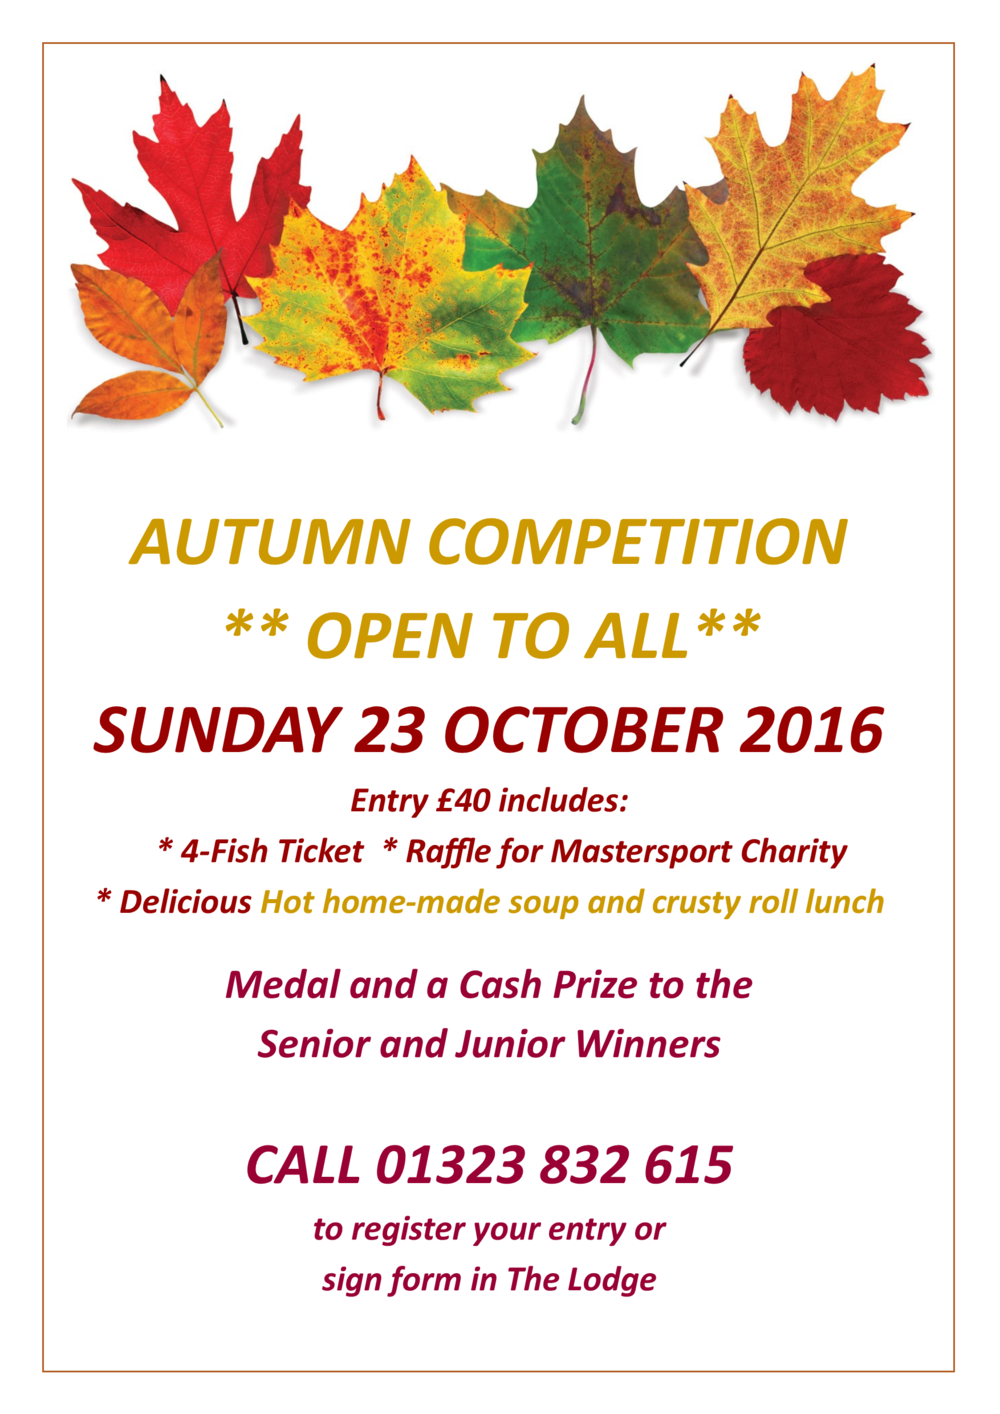 Autumn Competition 23 October 2016.png